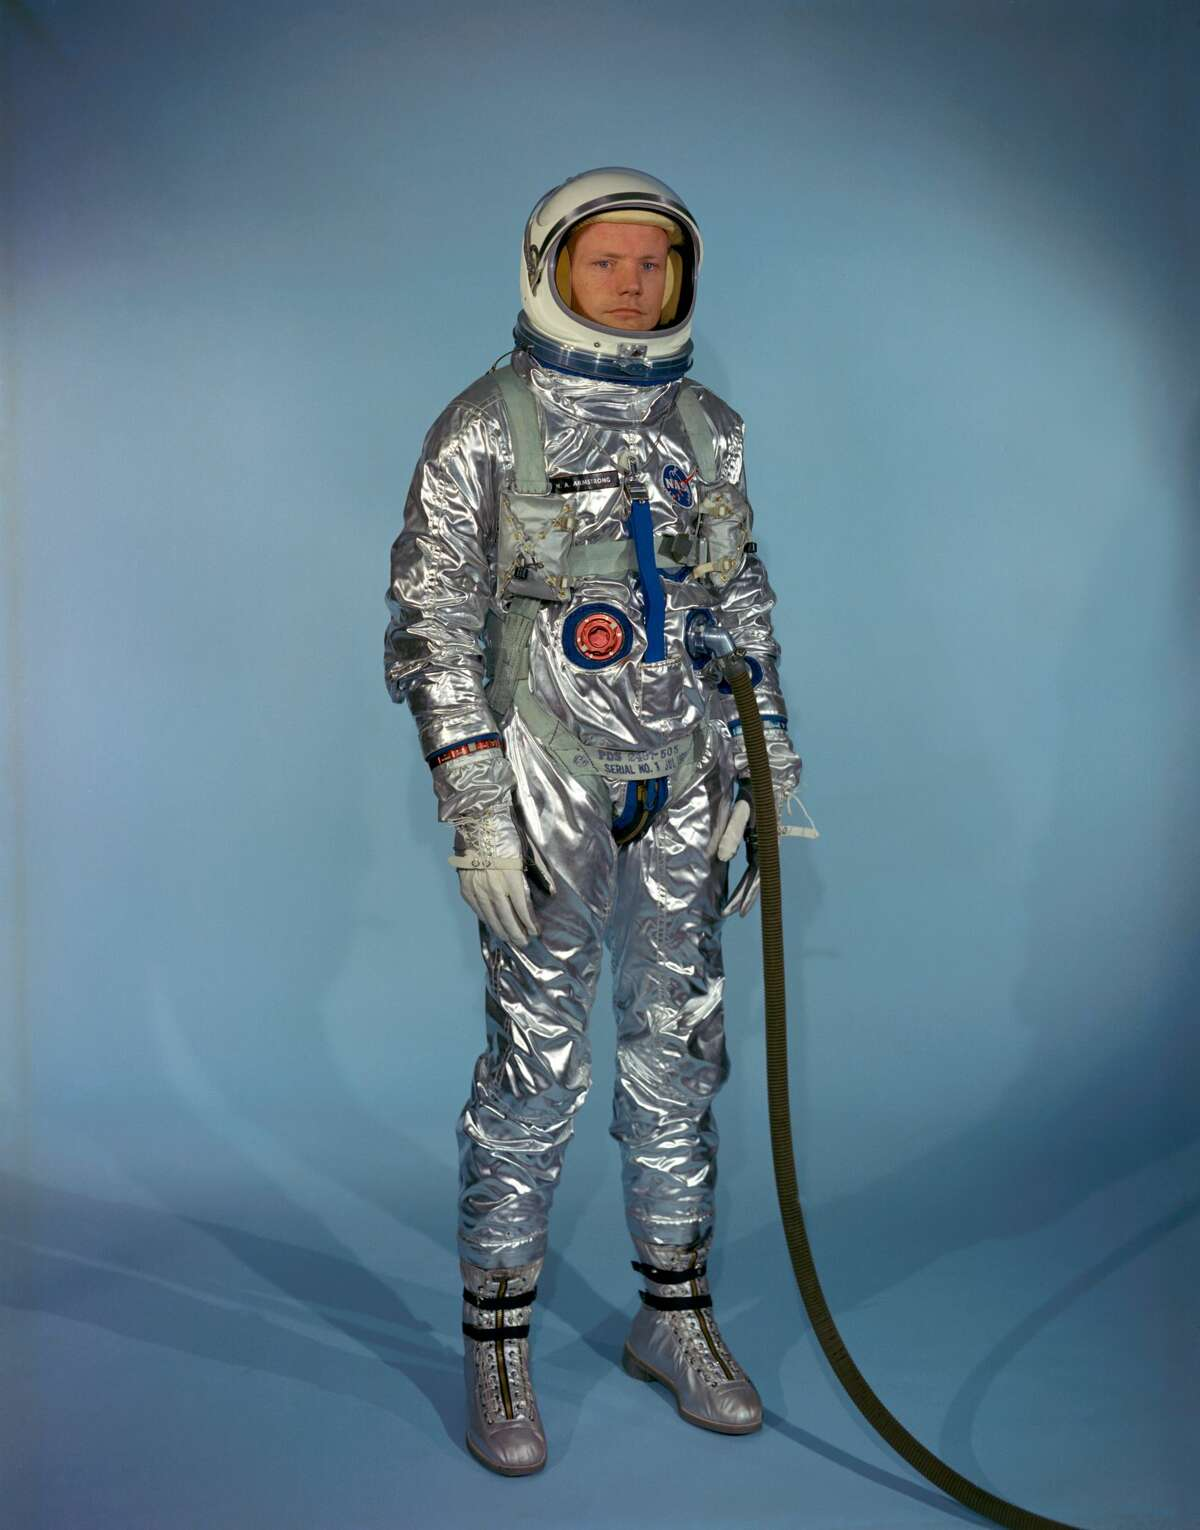 Gemini space suits Years active: 1960s